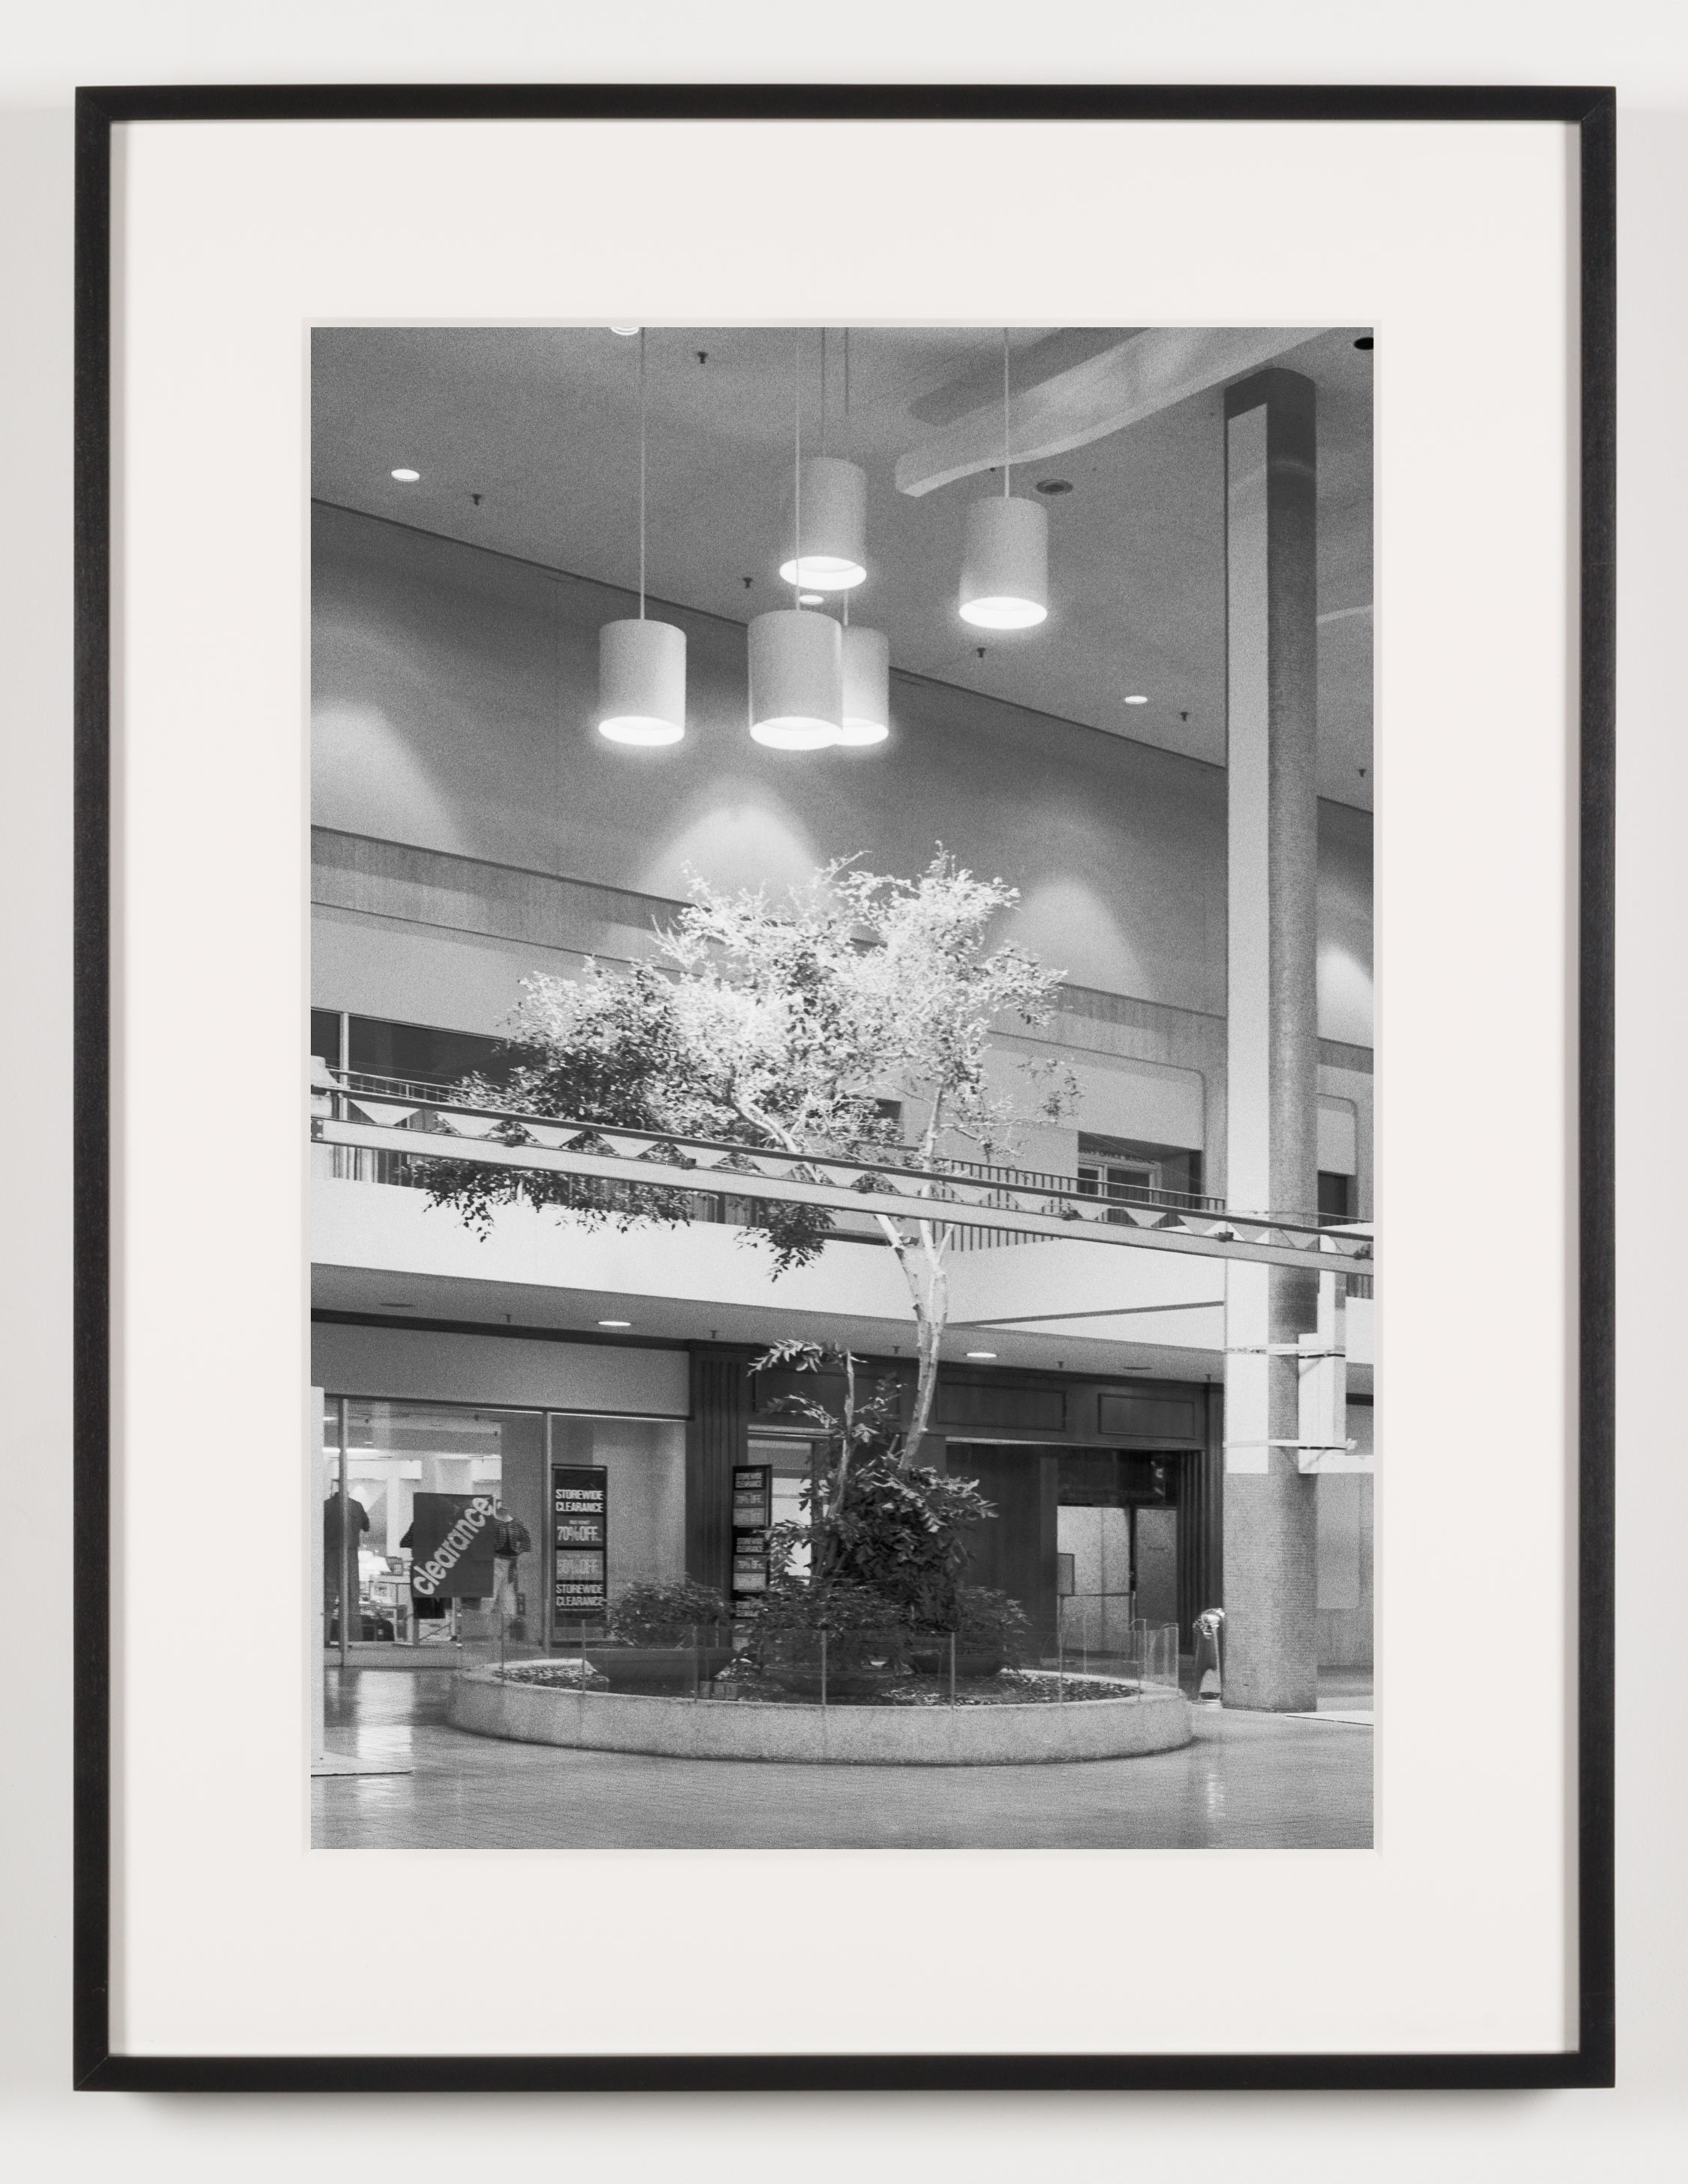 Midtown Plaza (View of Central Plaza), Rochester, NY, Est. 1962, Demo. 2010    2011   Epson Ultrachrome K3 archival ink jet print on Hahnemühle Photo Rag paper  21 5/8 x 28 1/8 inches   American Passages, 2001–2011